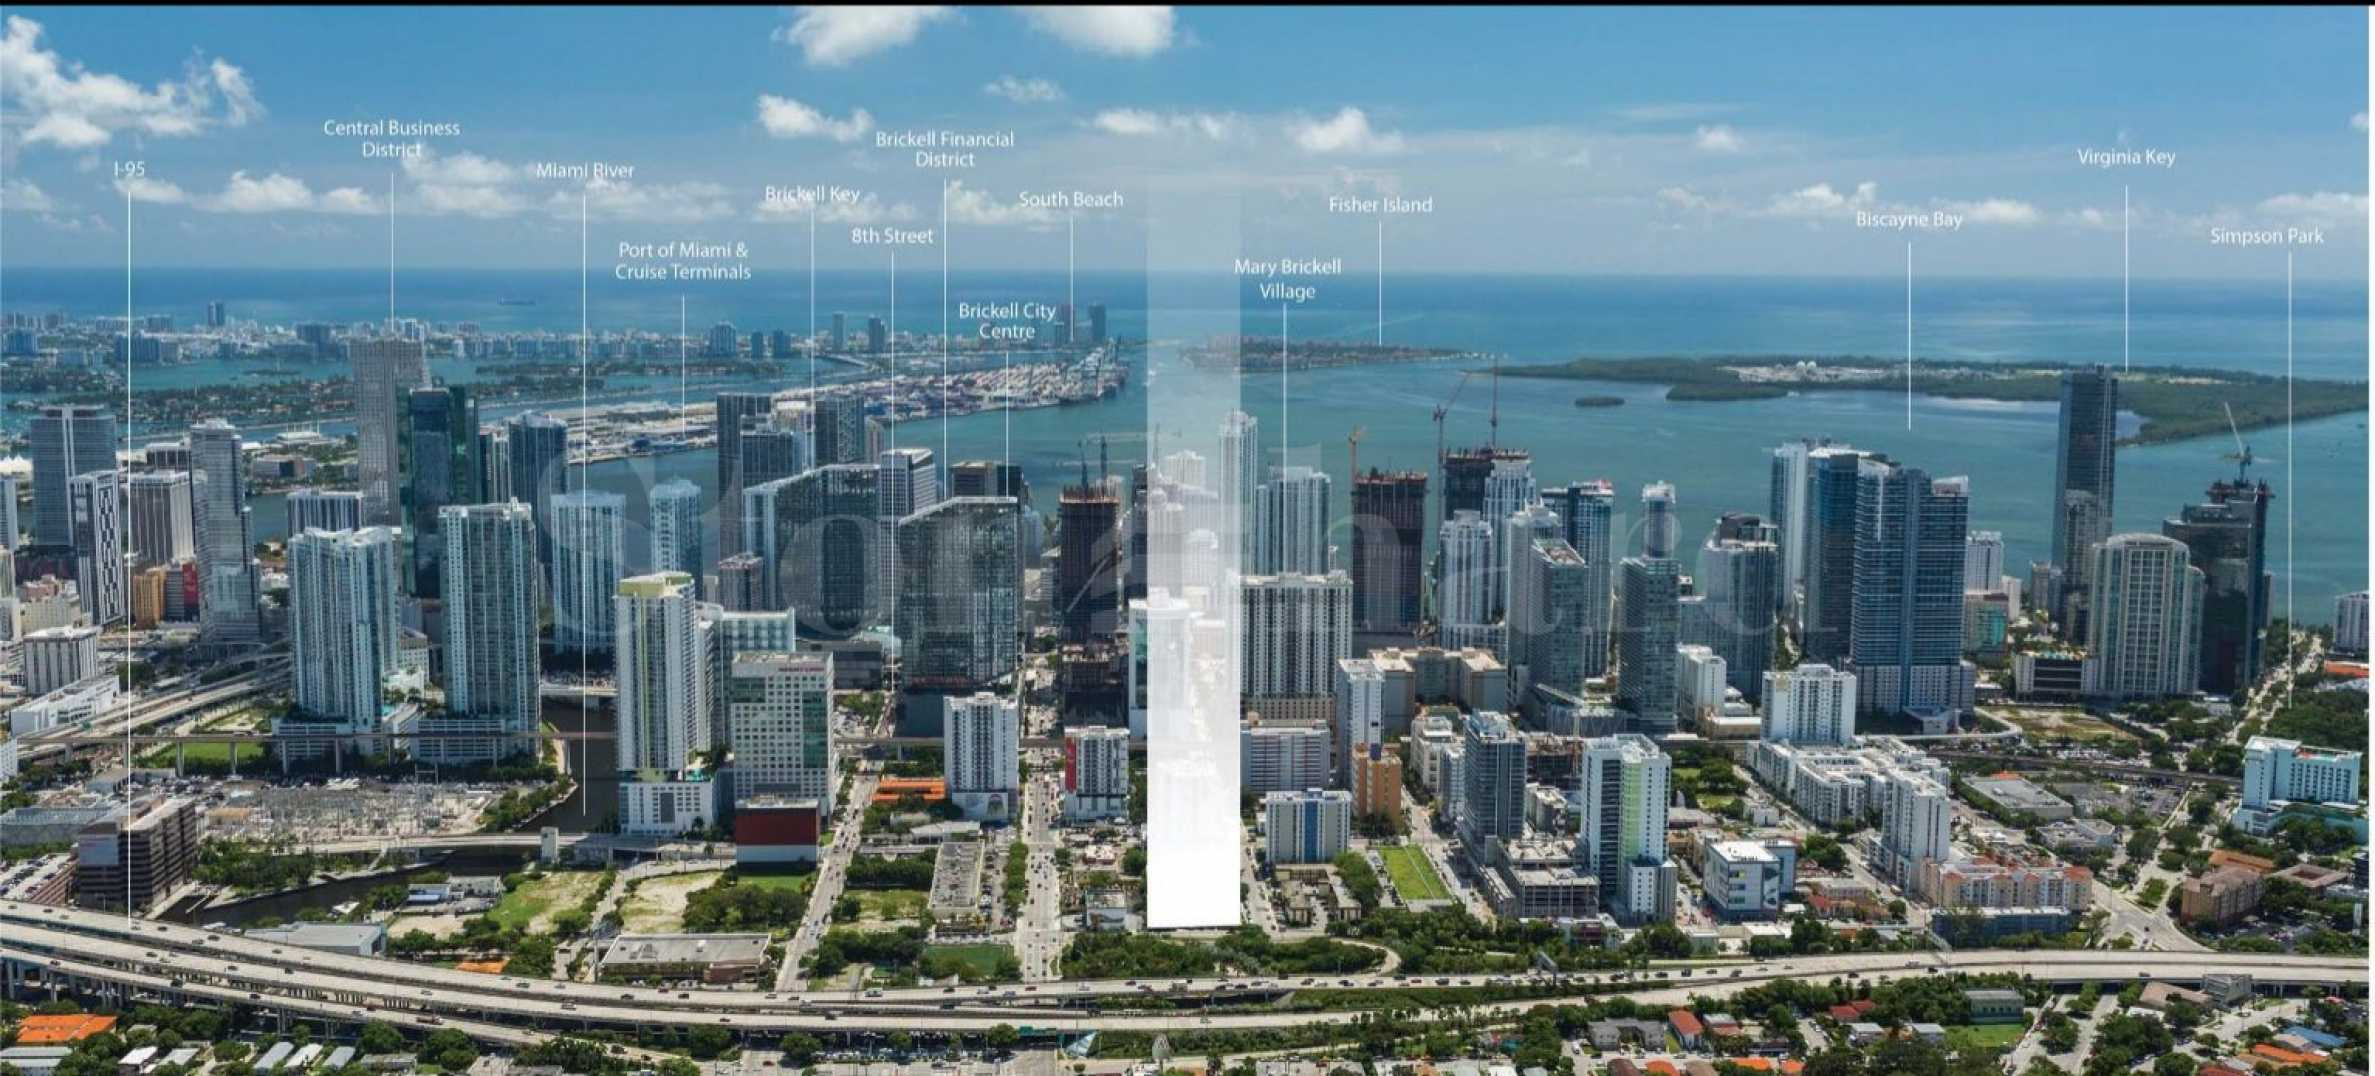 Smart Brickell-the first